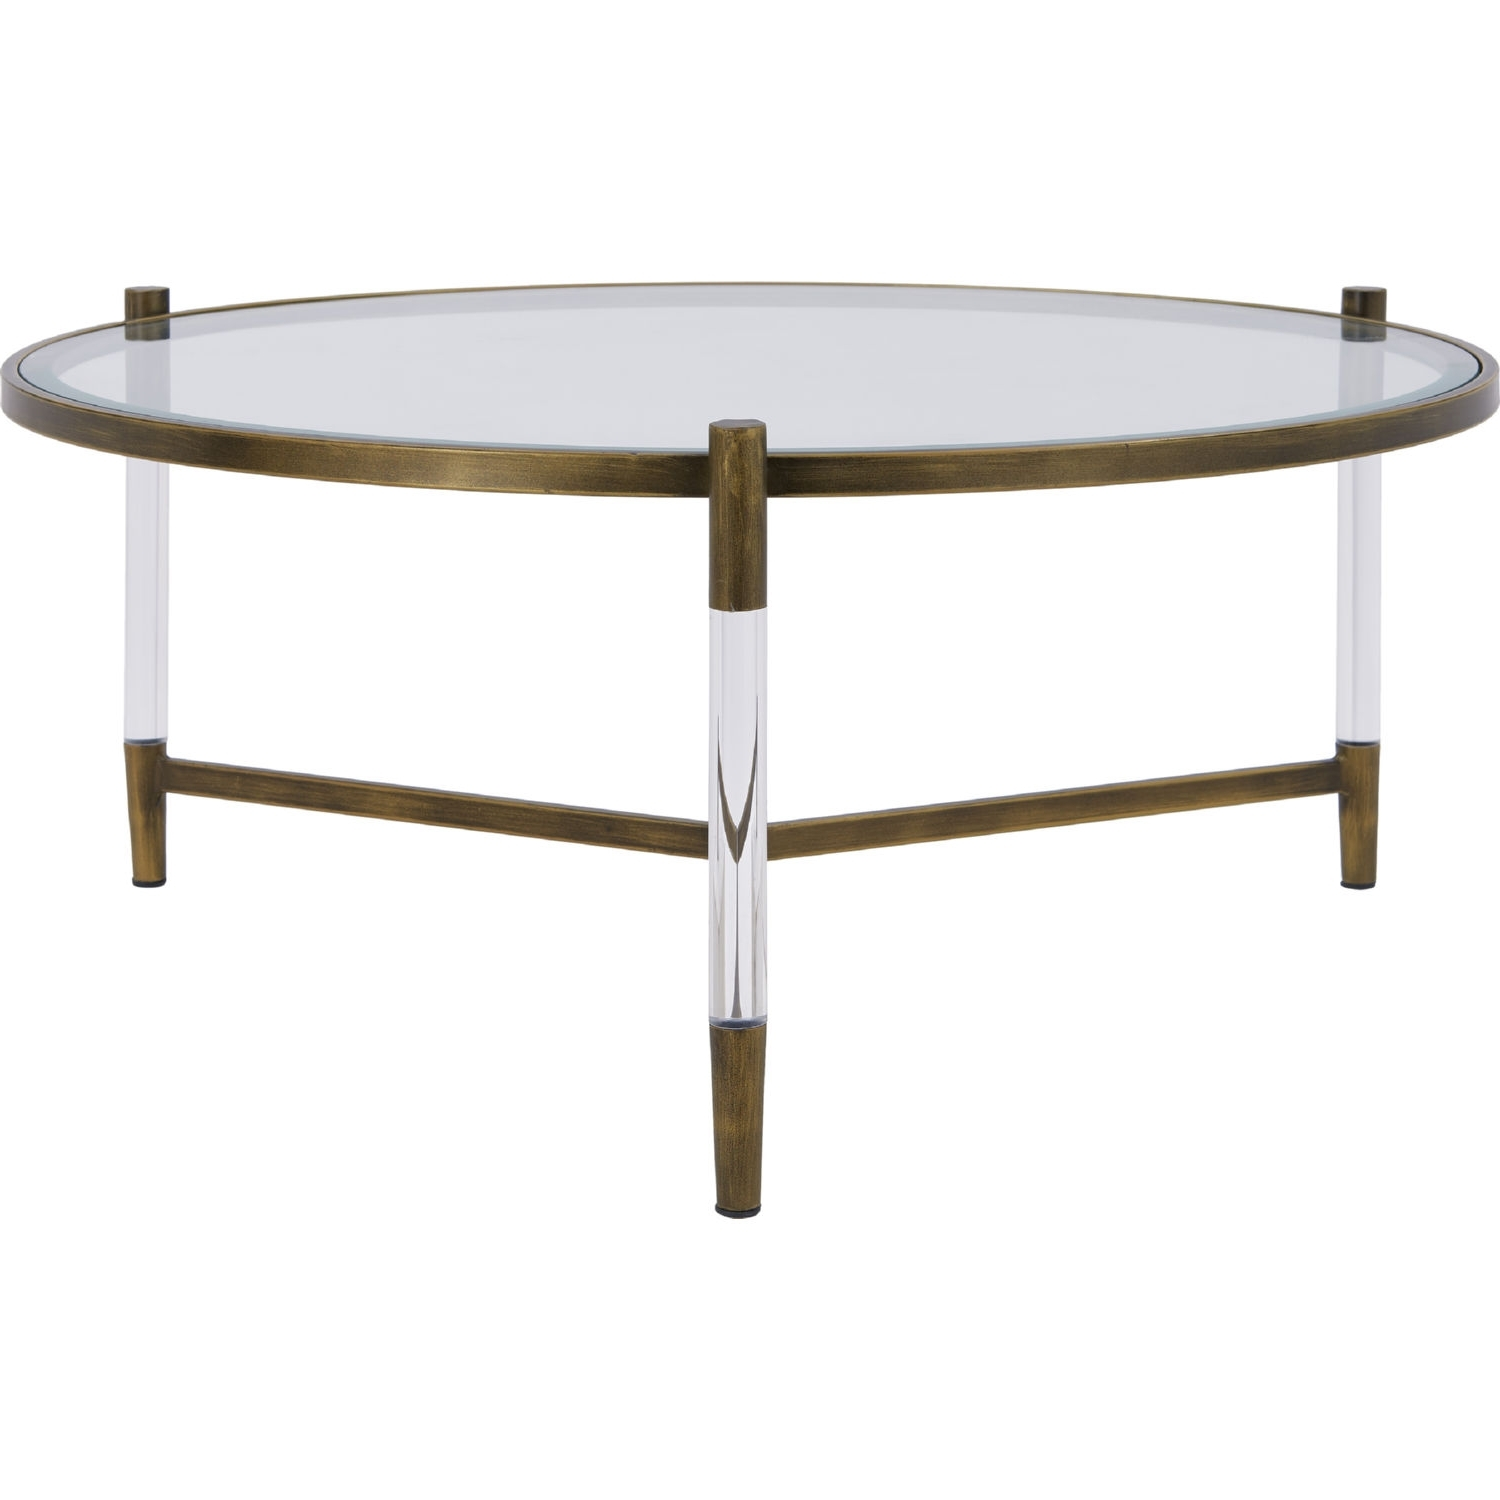 New Pacific Direct 1600028 Amaris Coffee Table In Acrylic, Brushed Within Latest Acrylic & Brushed Brass Coffee Tables (Gallery 19 of 20)